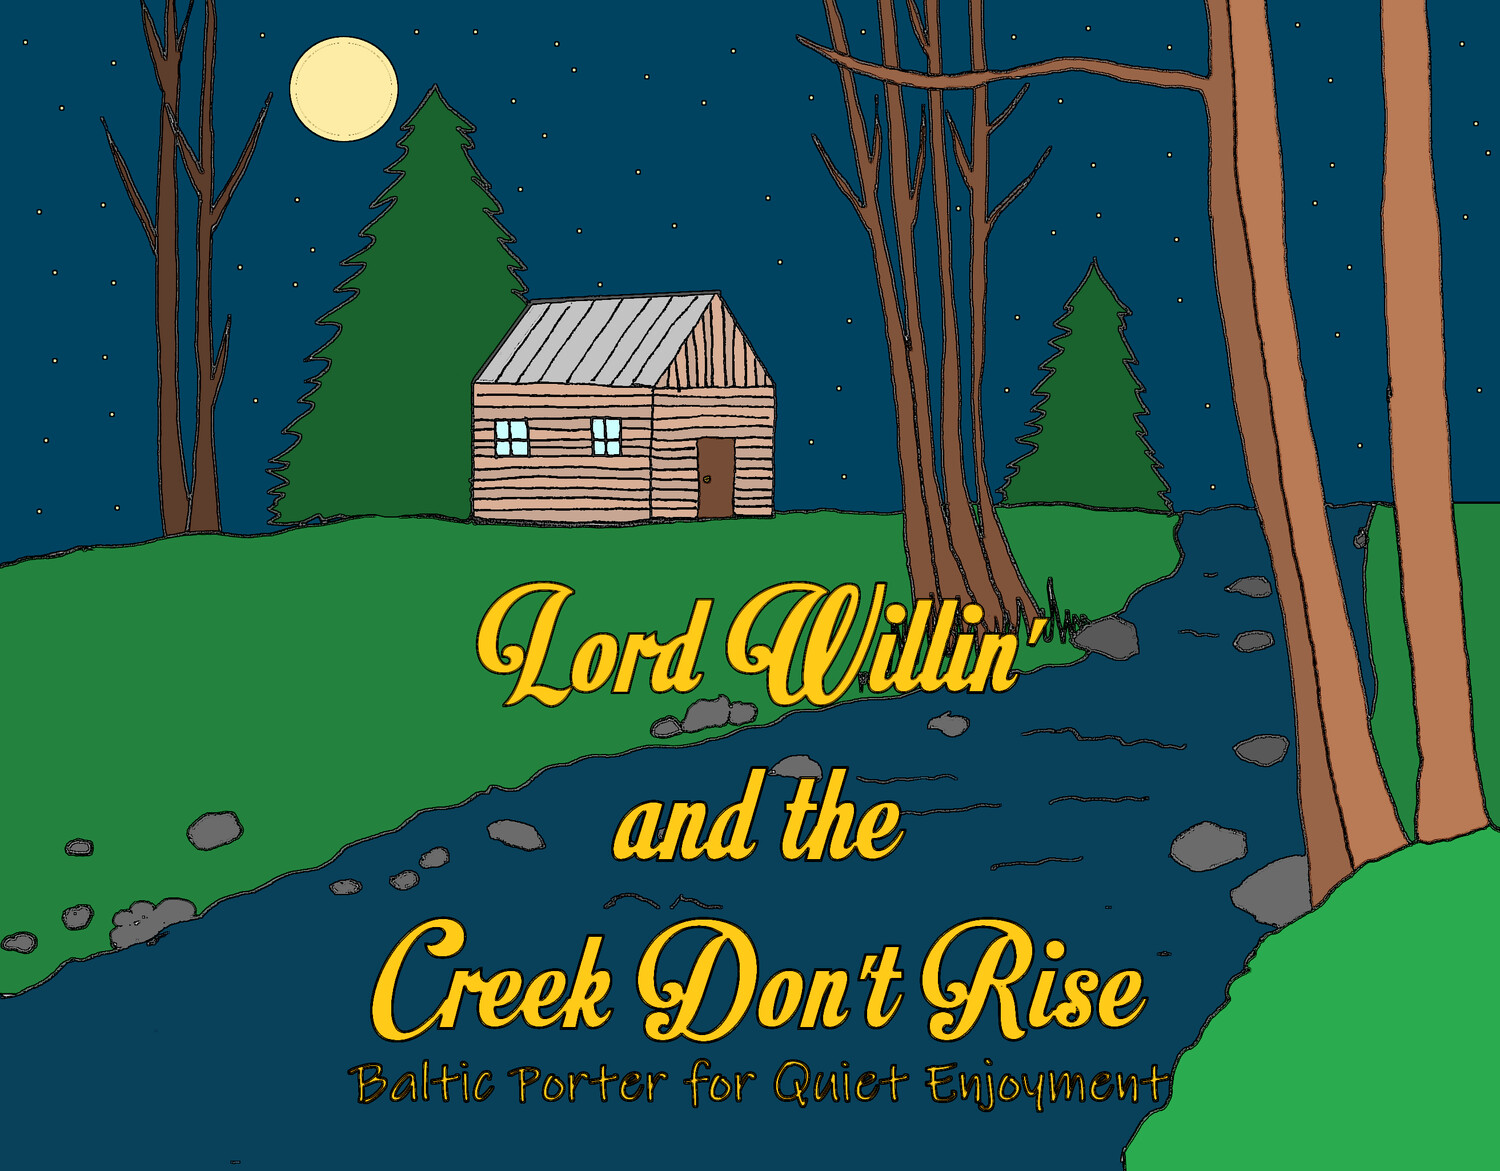 Casita Lord Willing and the Creek Don't Rise